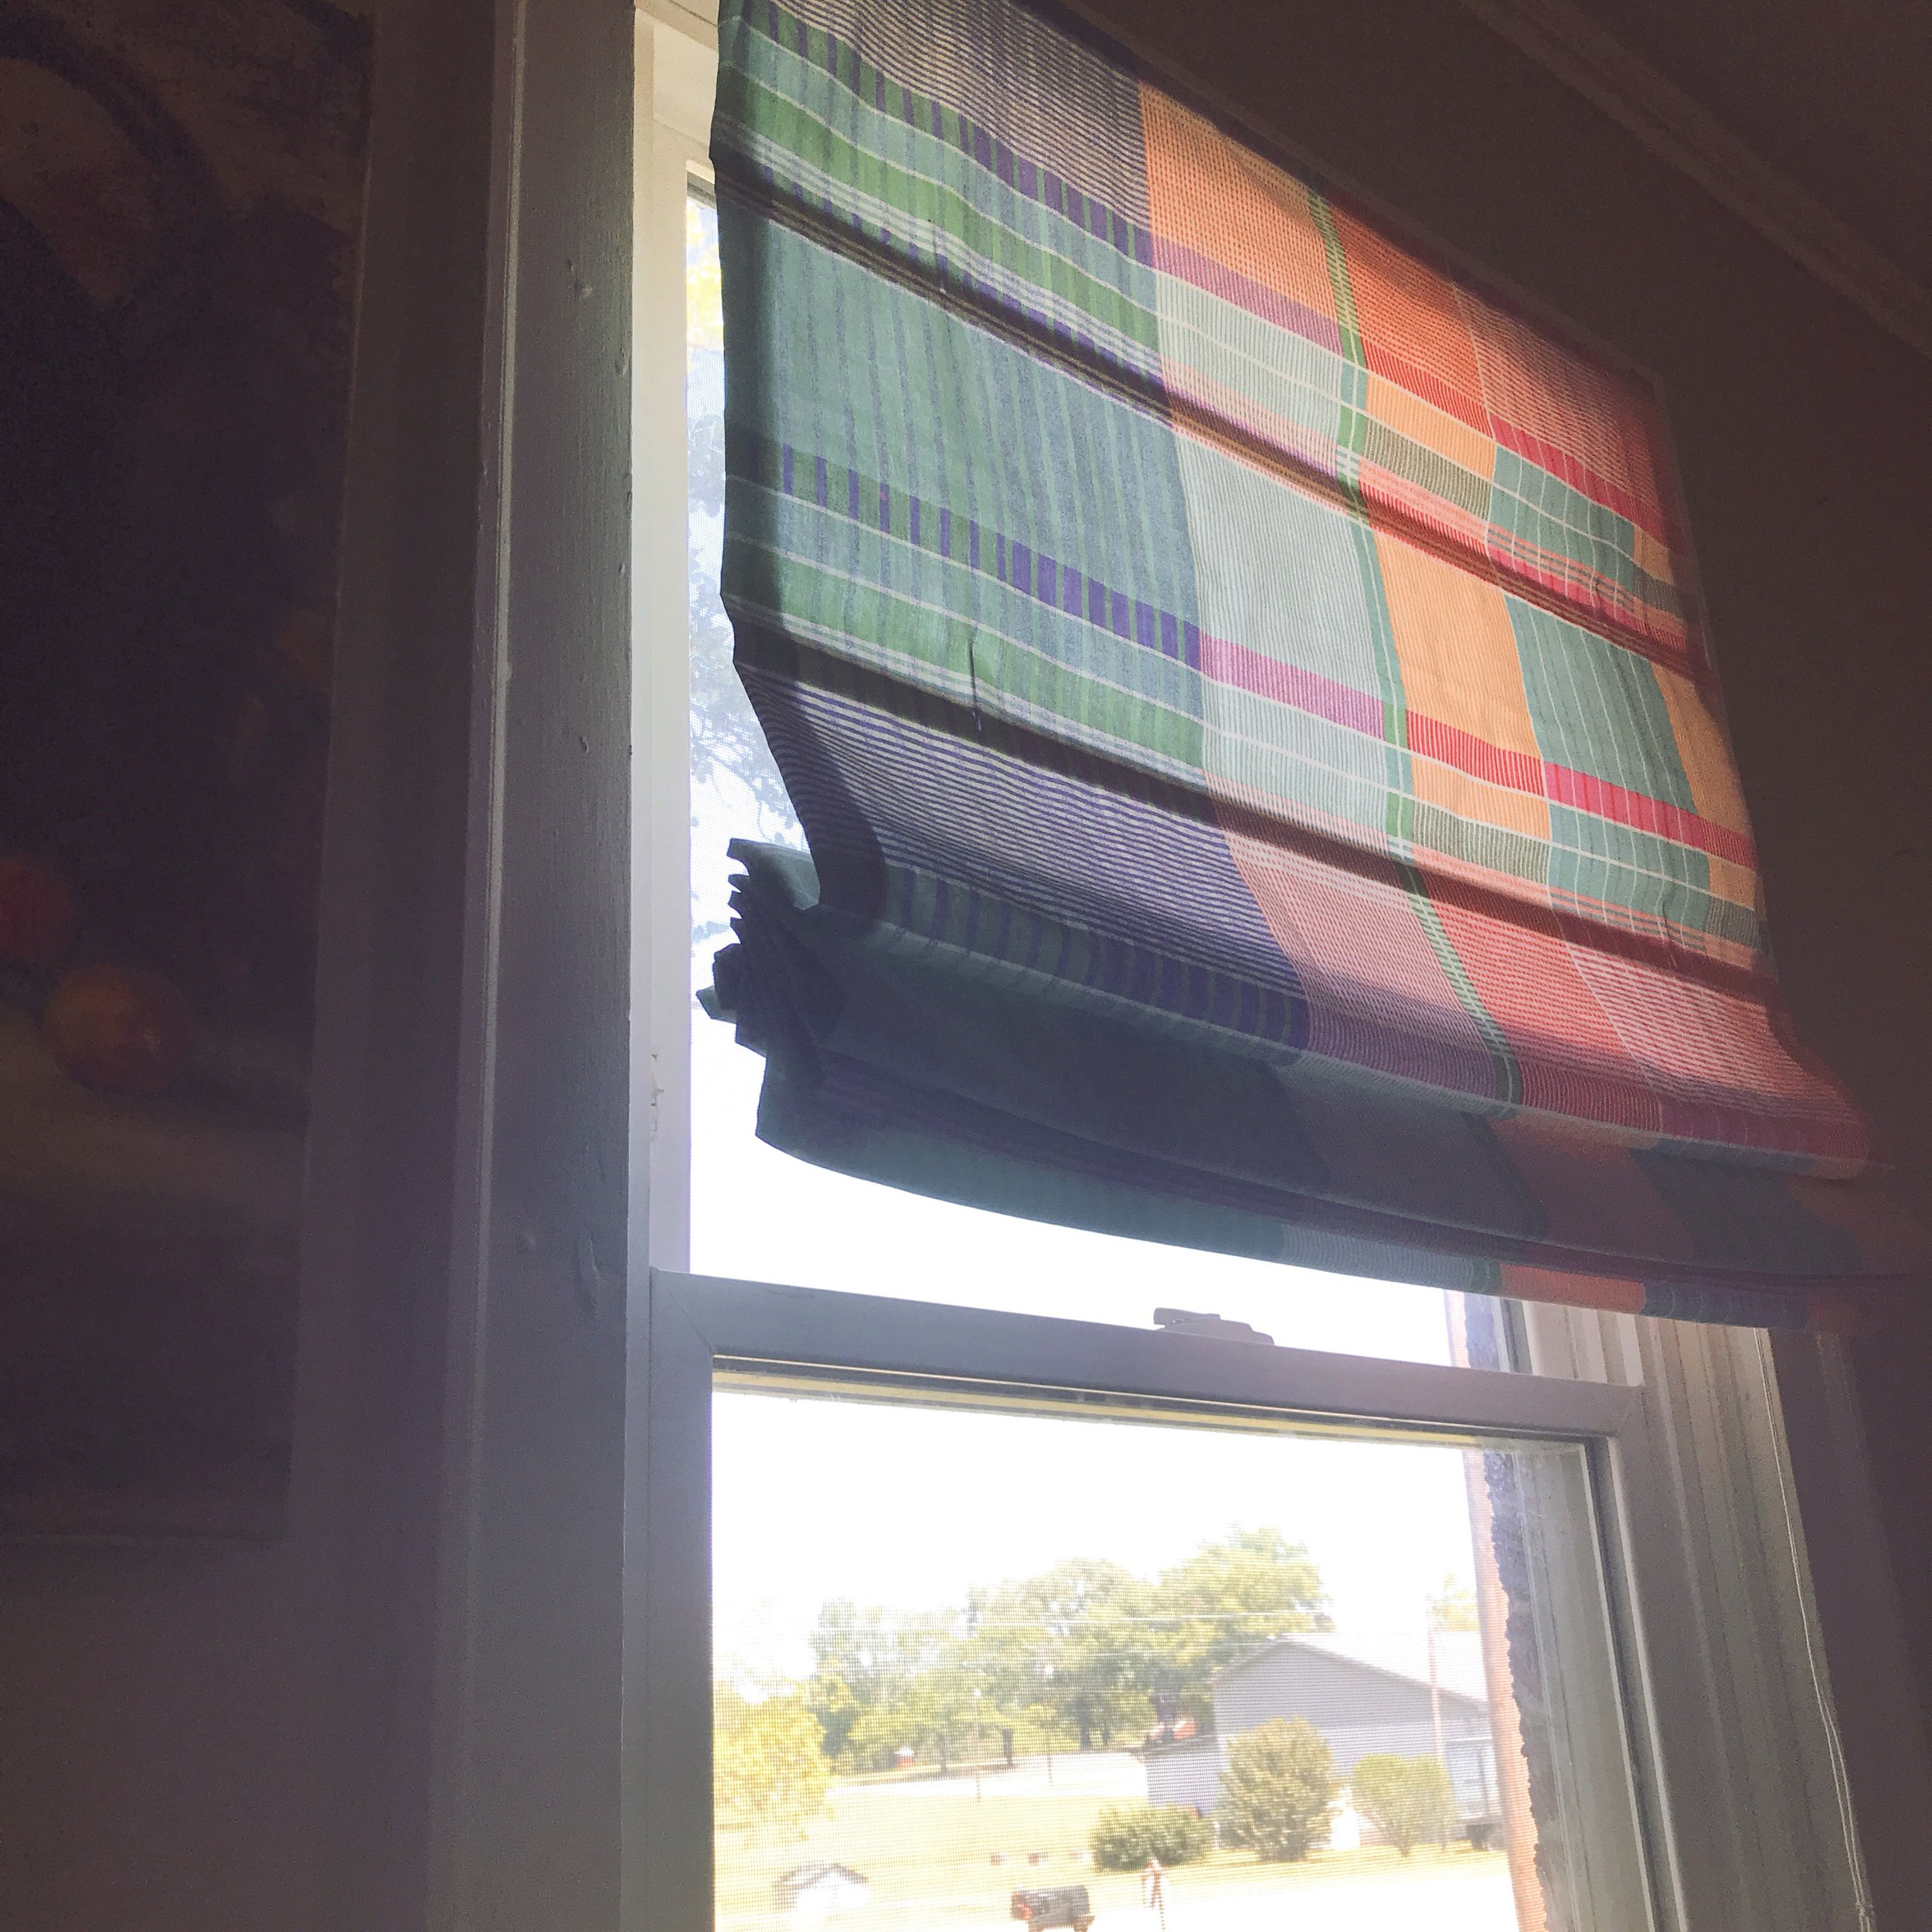 Upcycling old mini blinds into Roman shades on the Find/Fix/Make/Mend blog. // 100 Days of Upcycled Home Decor // Upcycling, Repurposing, and Growing // Motivation, Inspiration, and Support for Creative People <3 // Join the Free Find/Fix/Make/Mend Email Club! // #The100DayProject #The100DayProject2019 #100DayProject #100DayProject2019